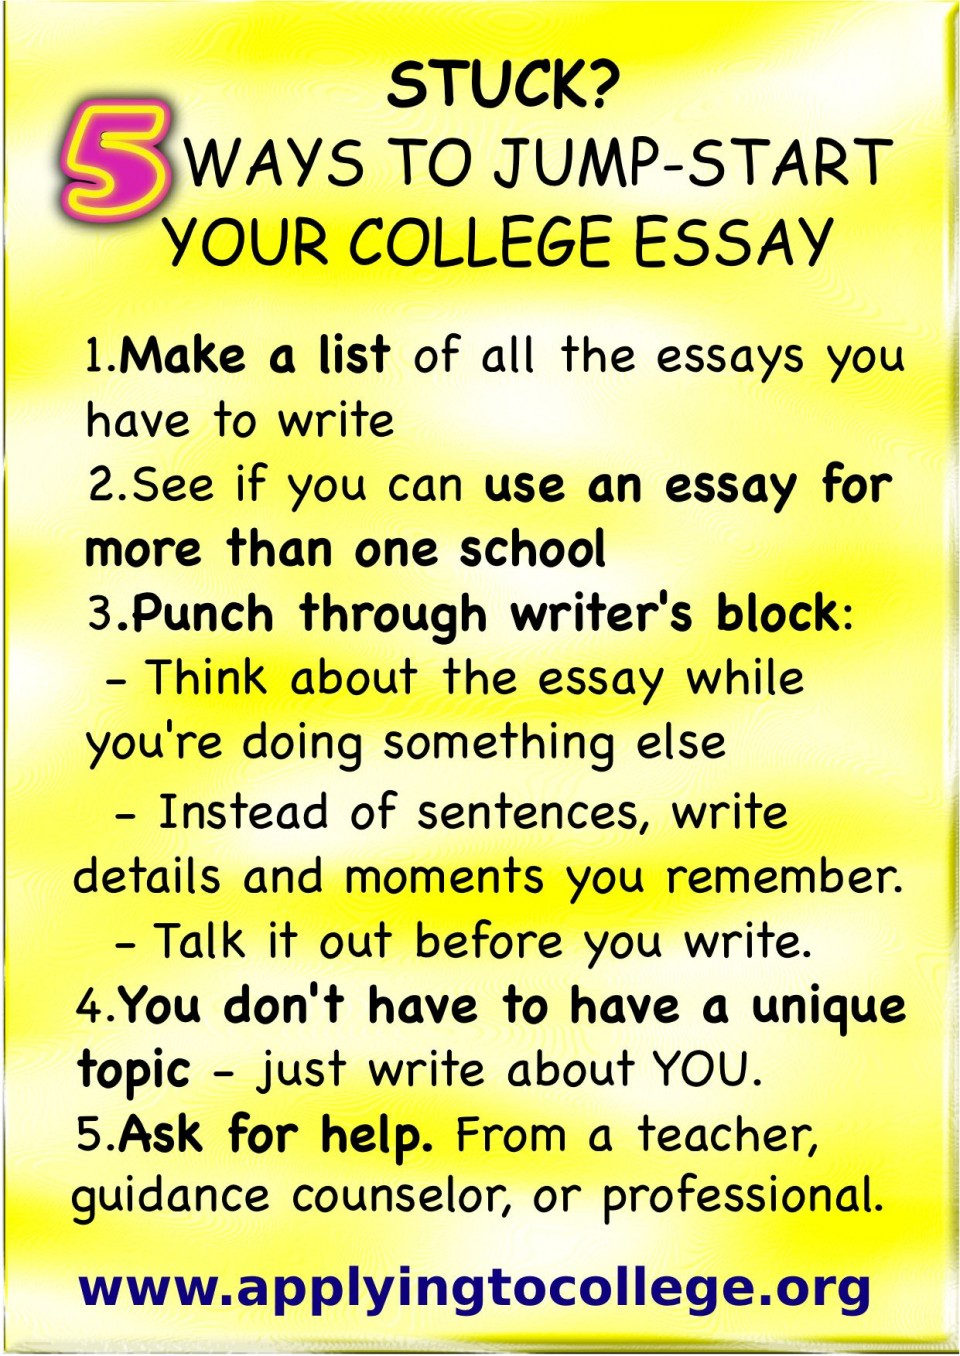 018 Stress Essay Awesome Questions Outline Pdf 960